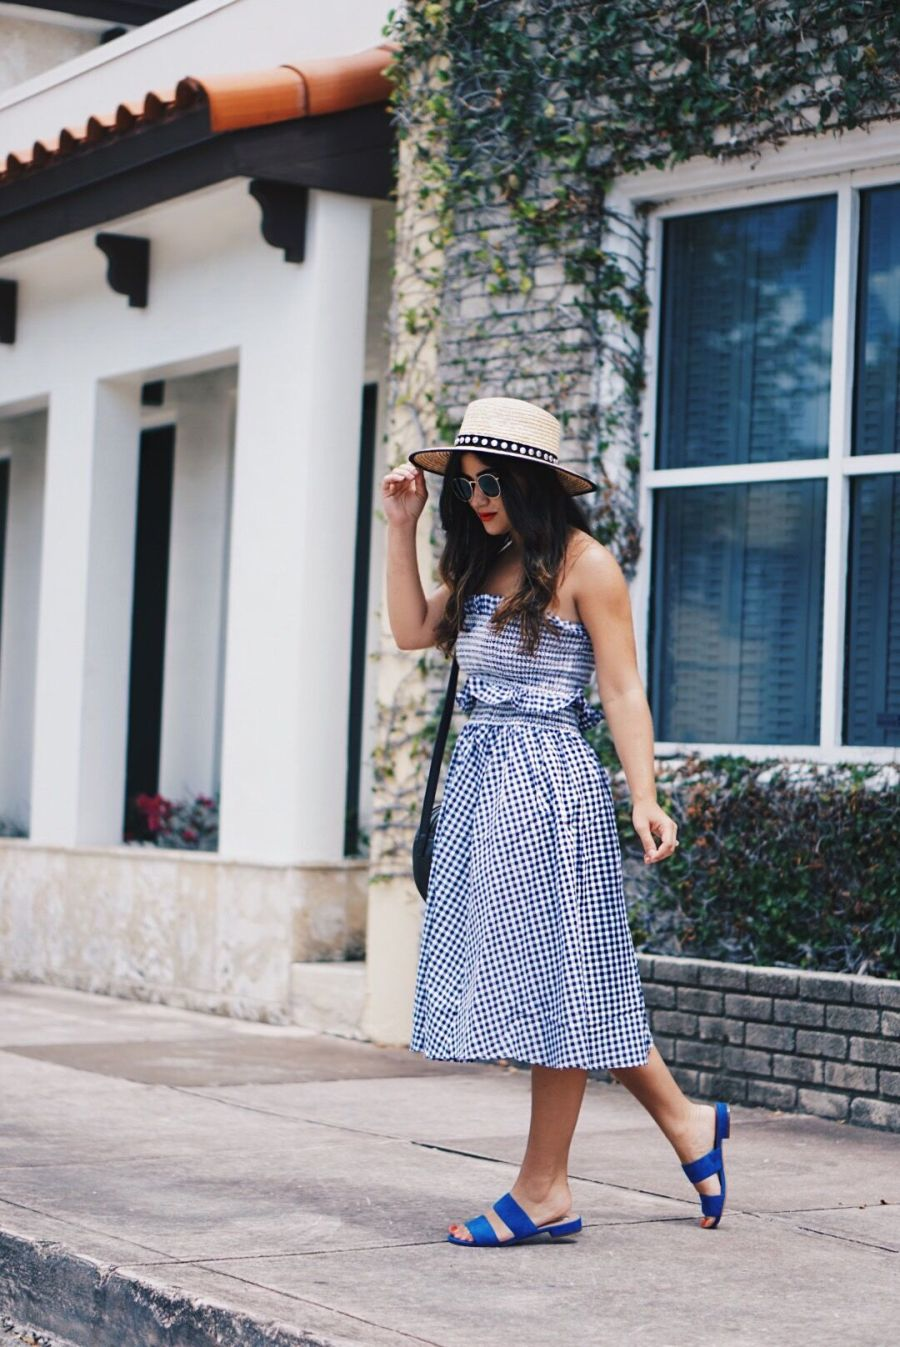 Fashion blogger styles gingham skirt outfit with sandals and hat